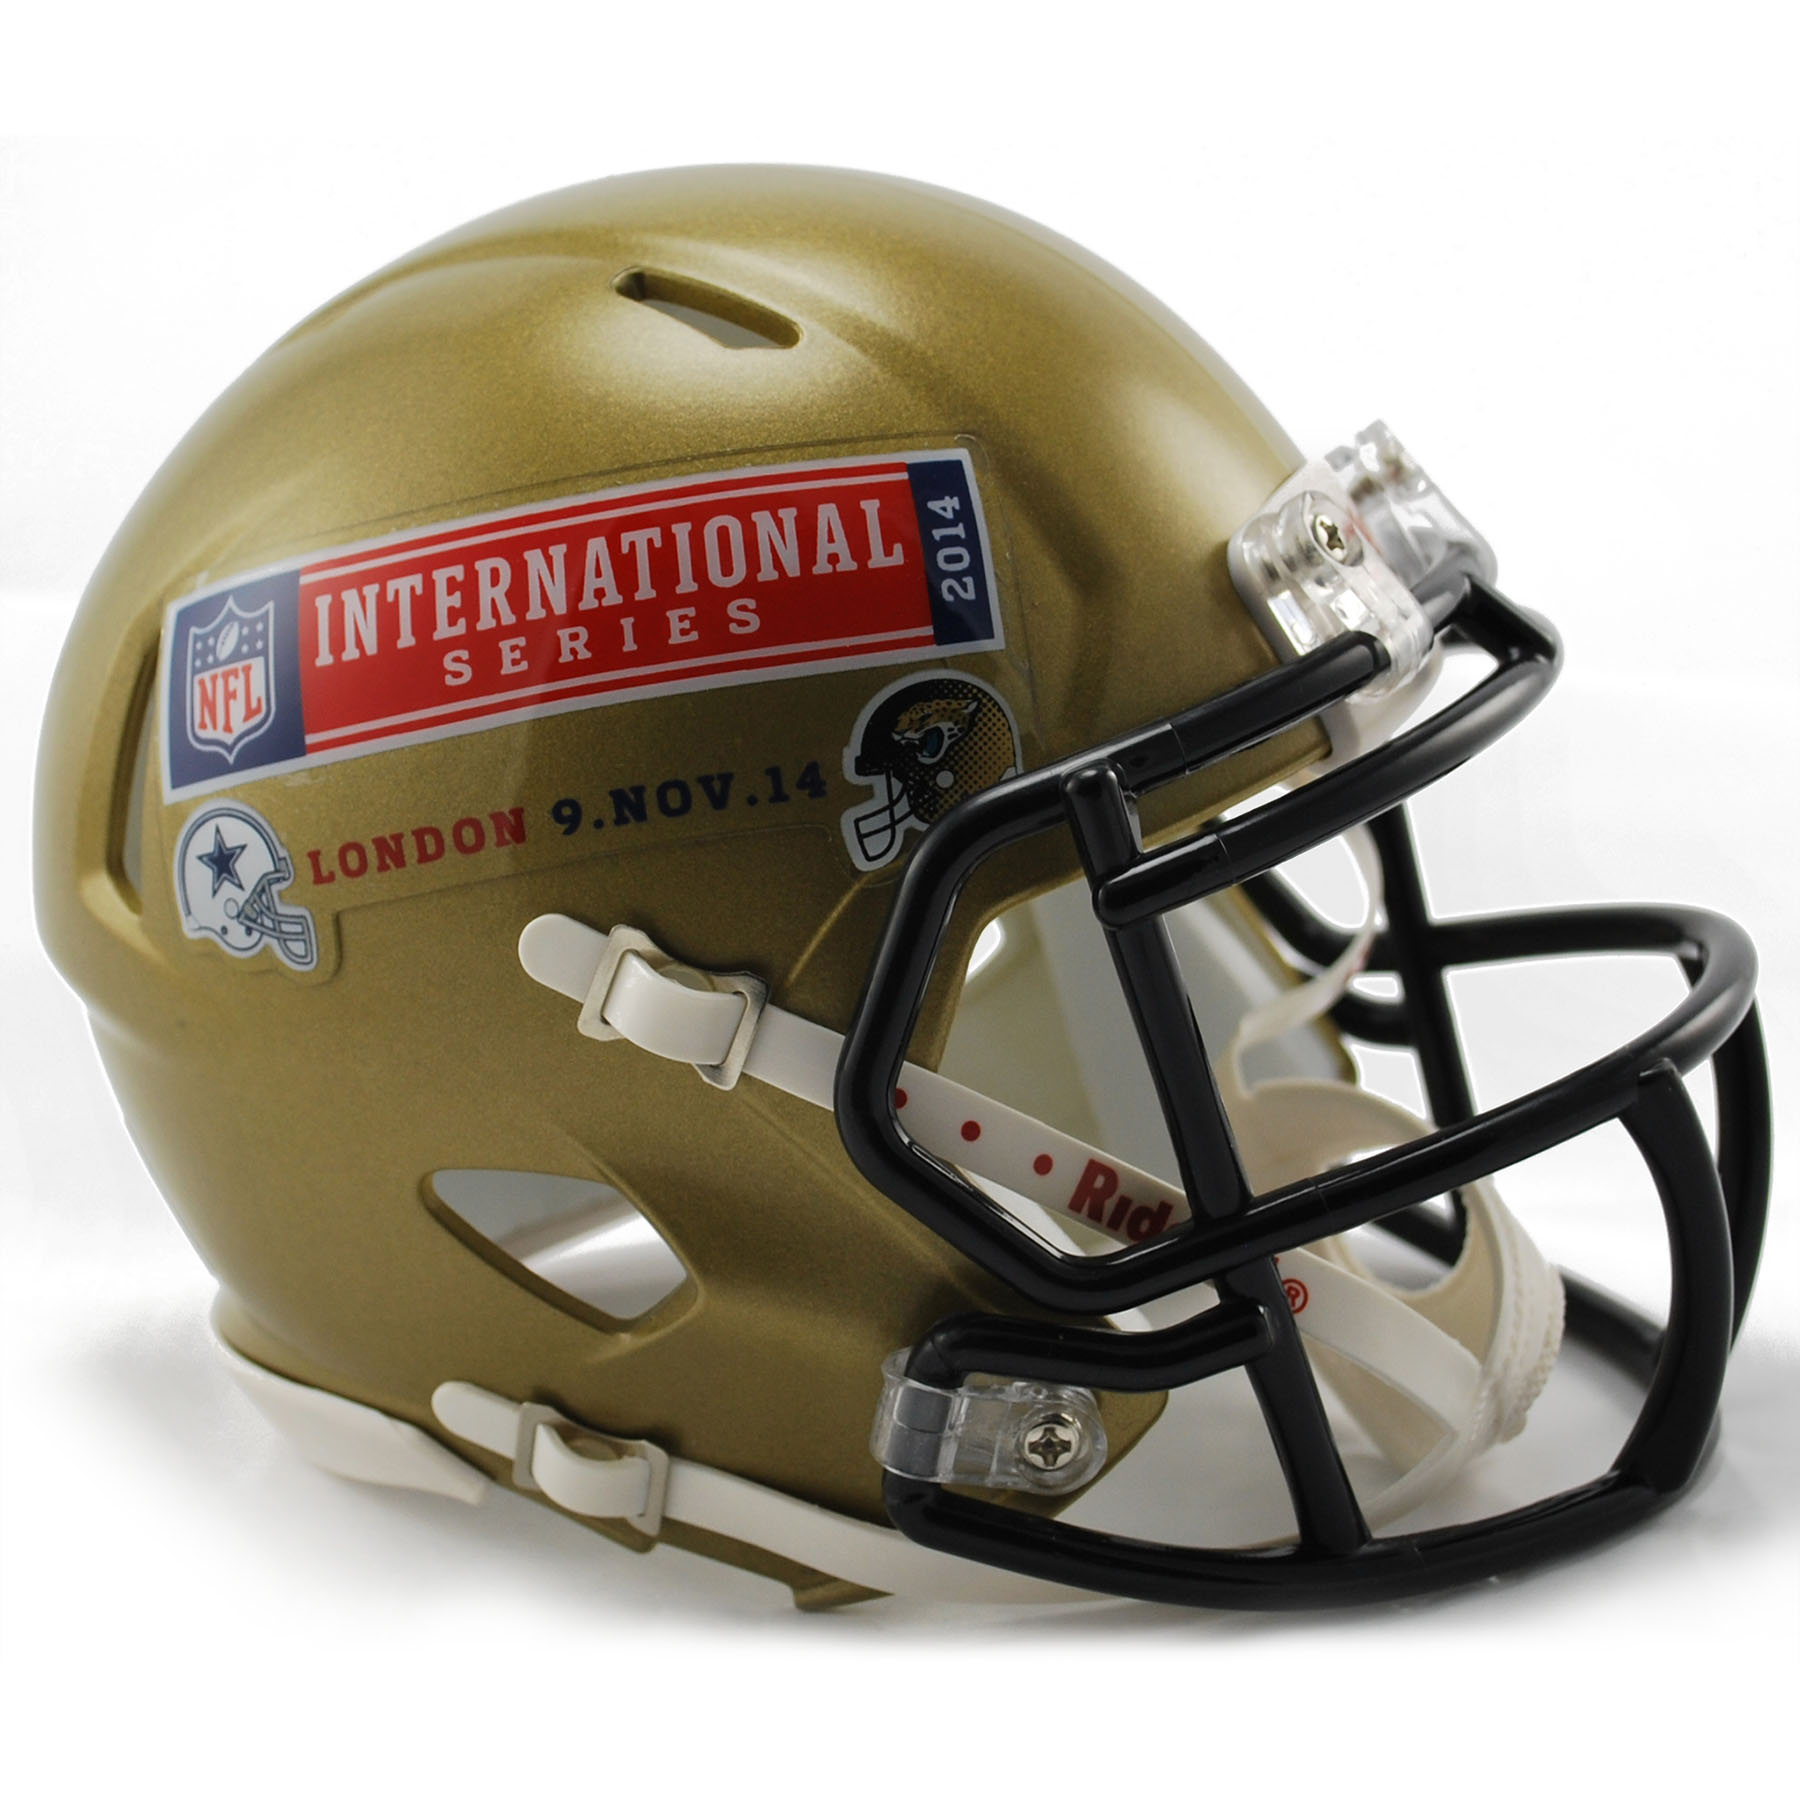 NFL Cowboys Vs Jaguars International Series Game 11 VSR4 Mini Helmet